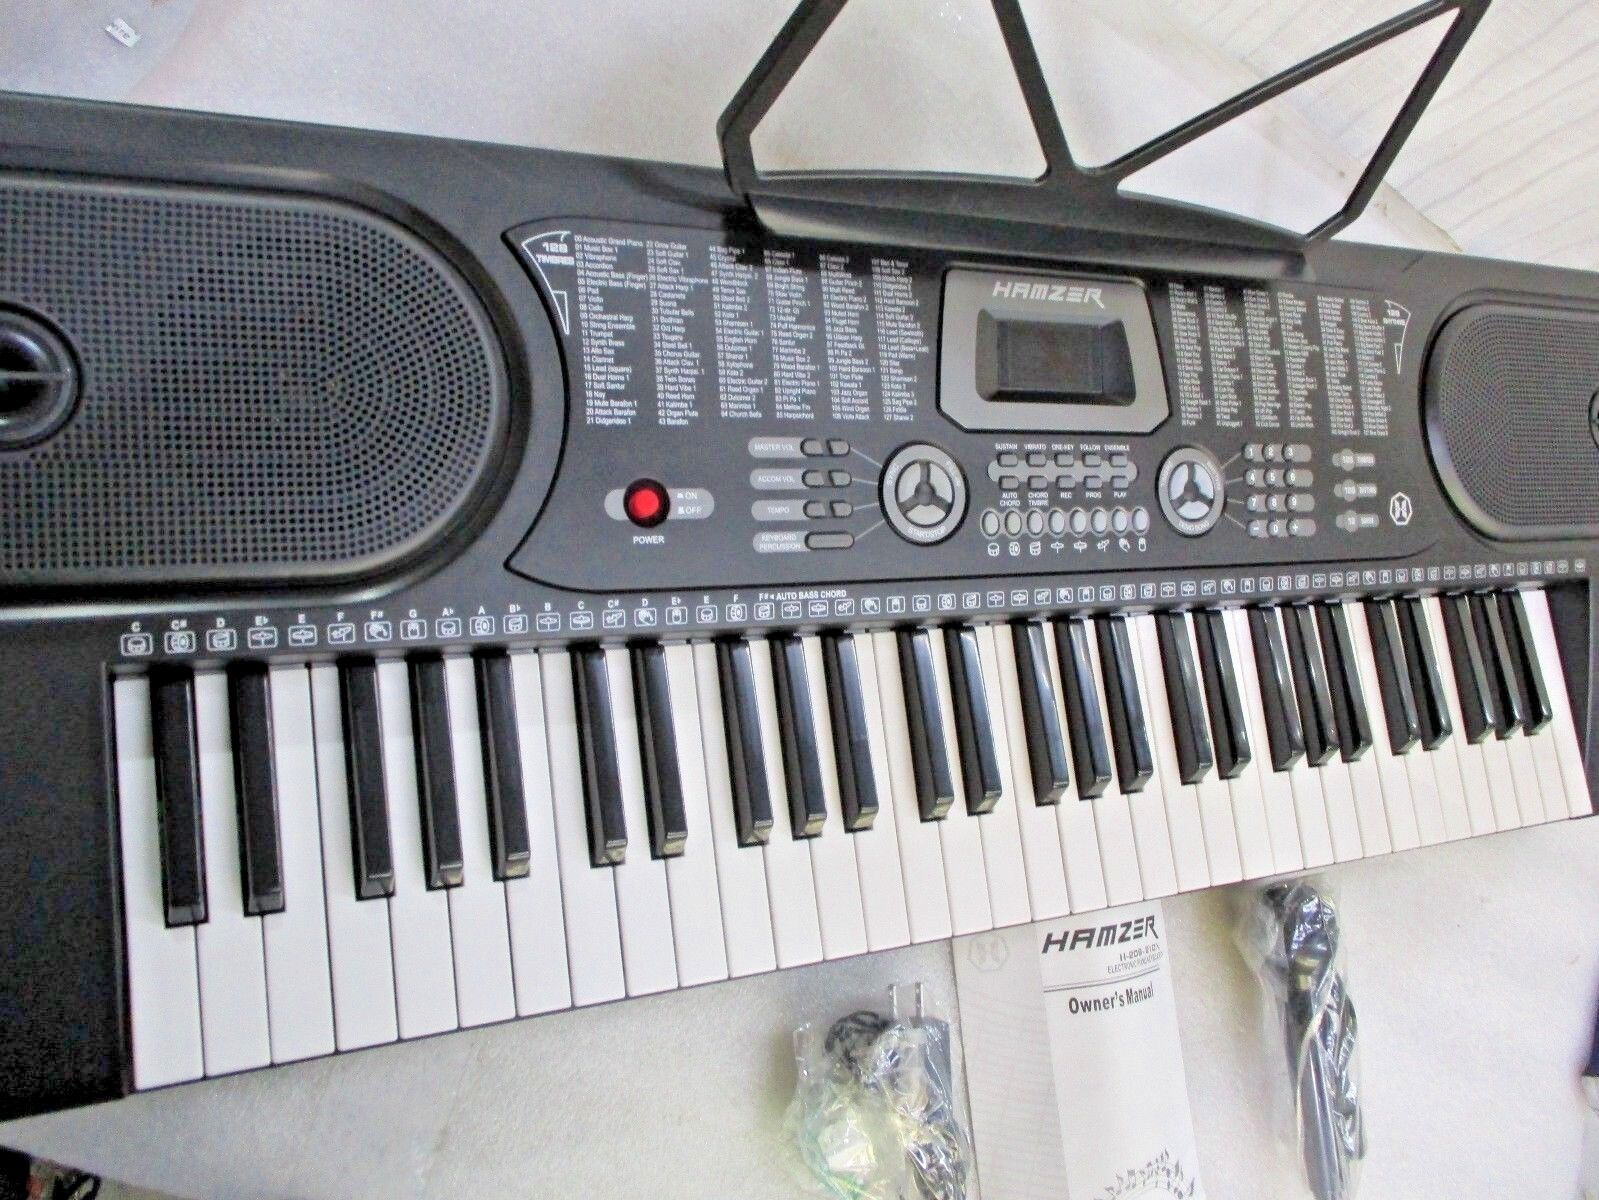 Hamzer 61-Key Digital Music Piano Keyboard